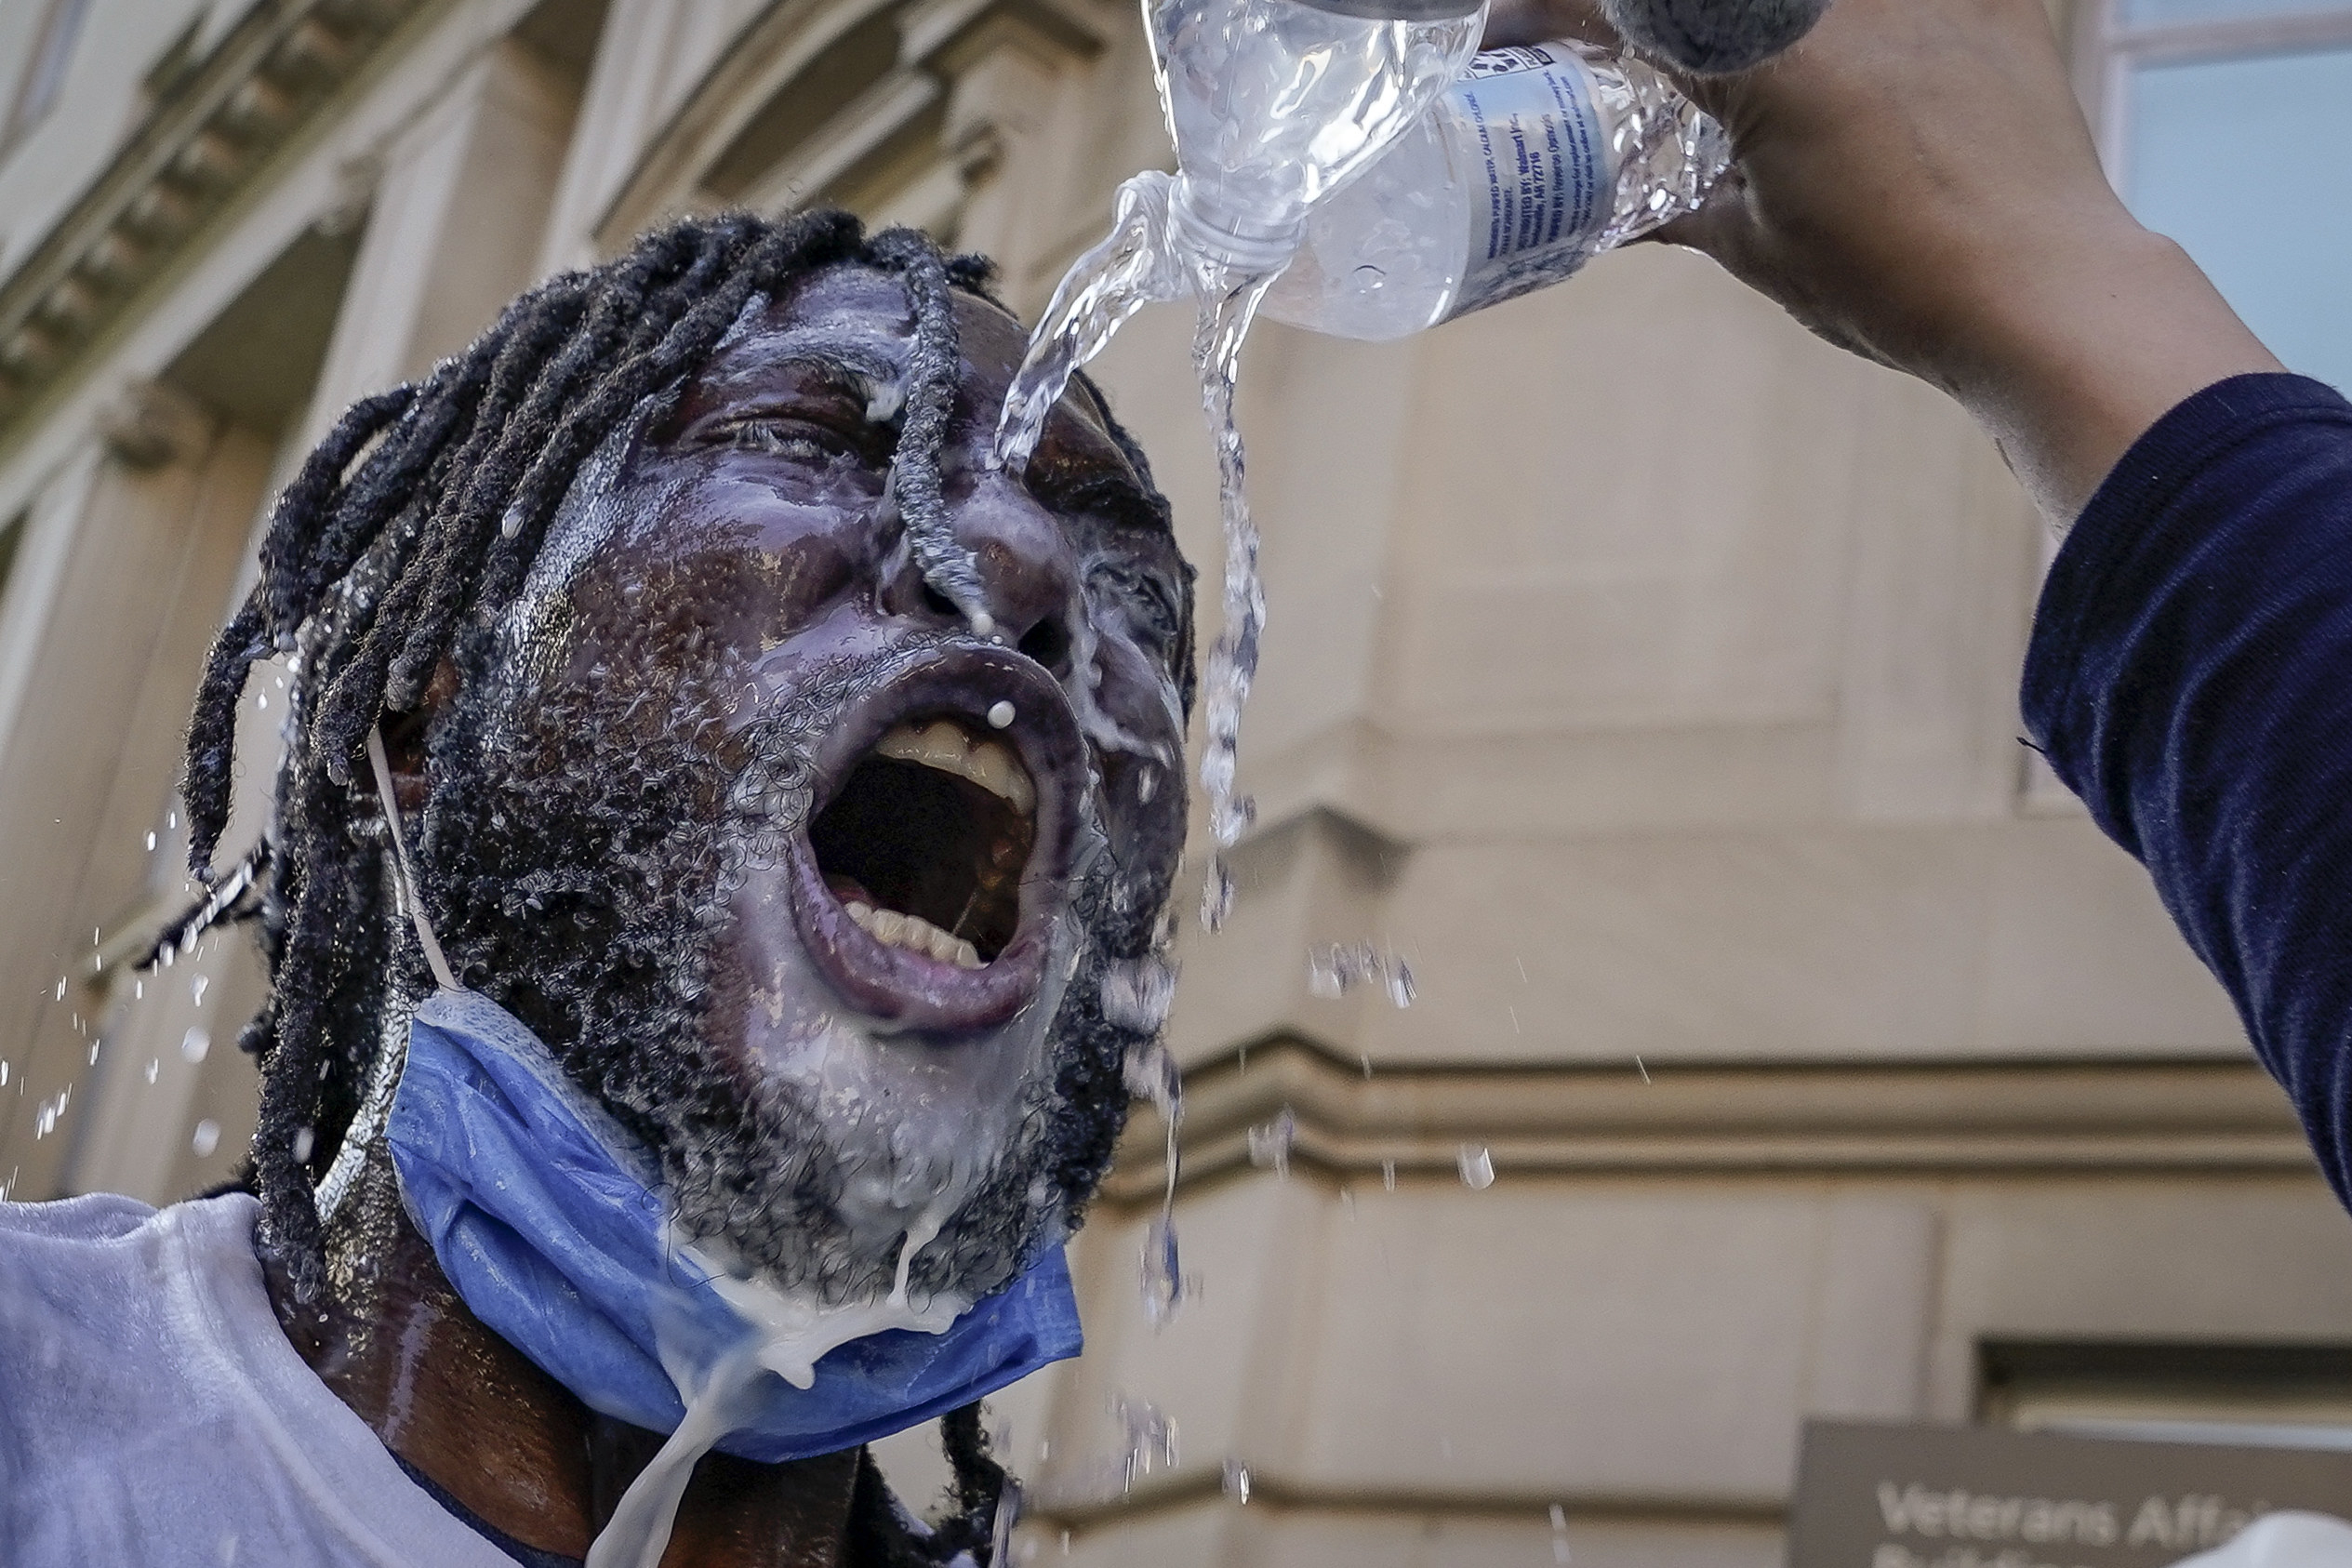 A protestor being doused with water and milk after being pepper sprayed